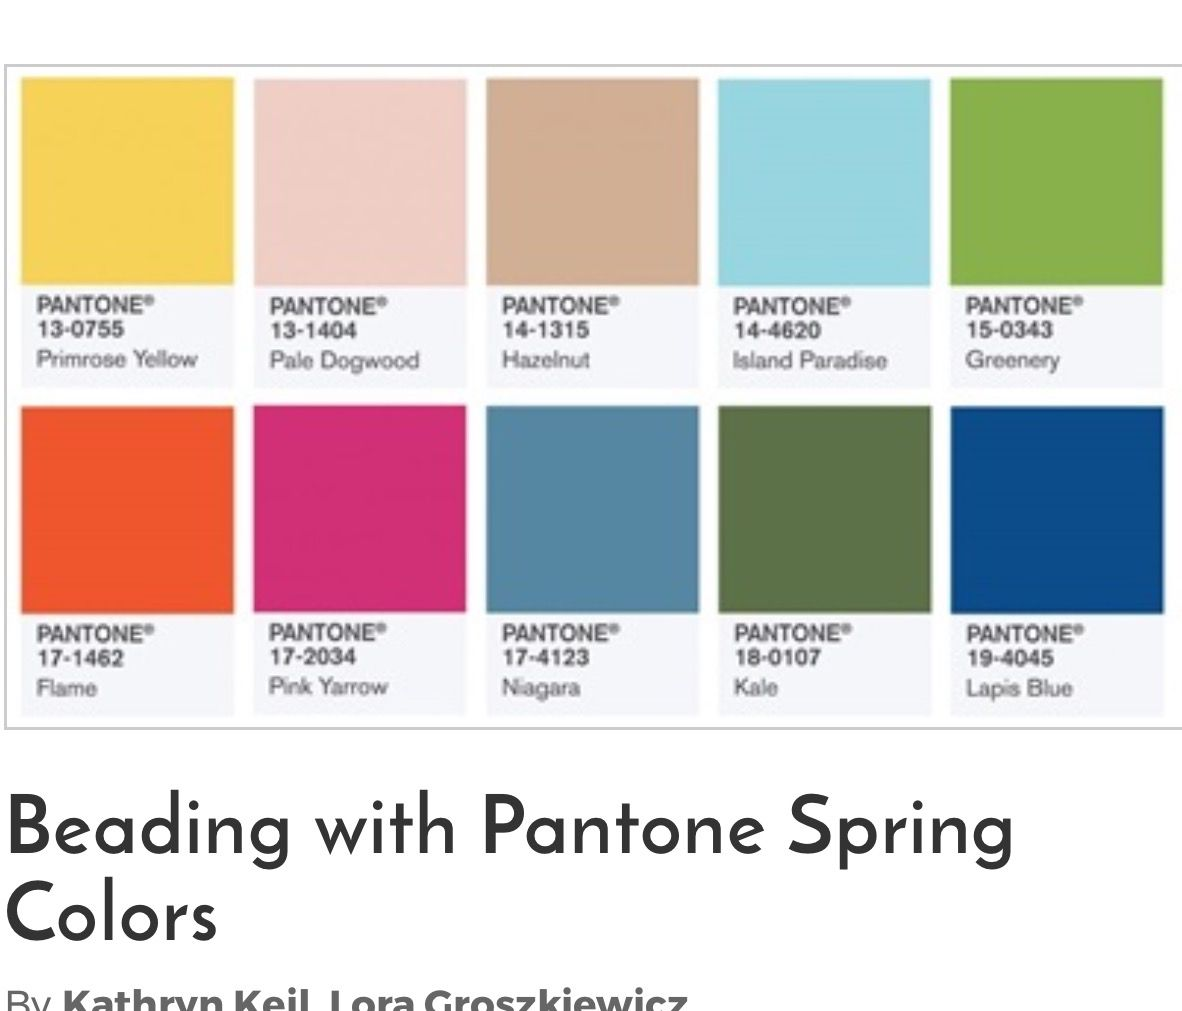 pindoris cromwell-pederson on pantone color of year | pinterest